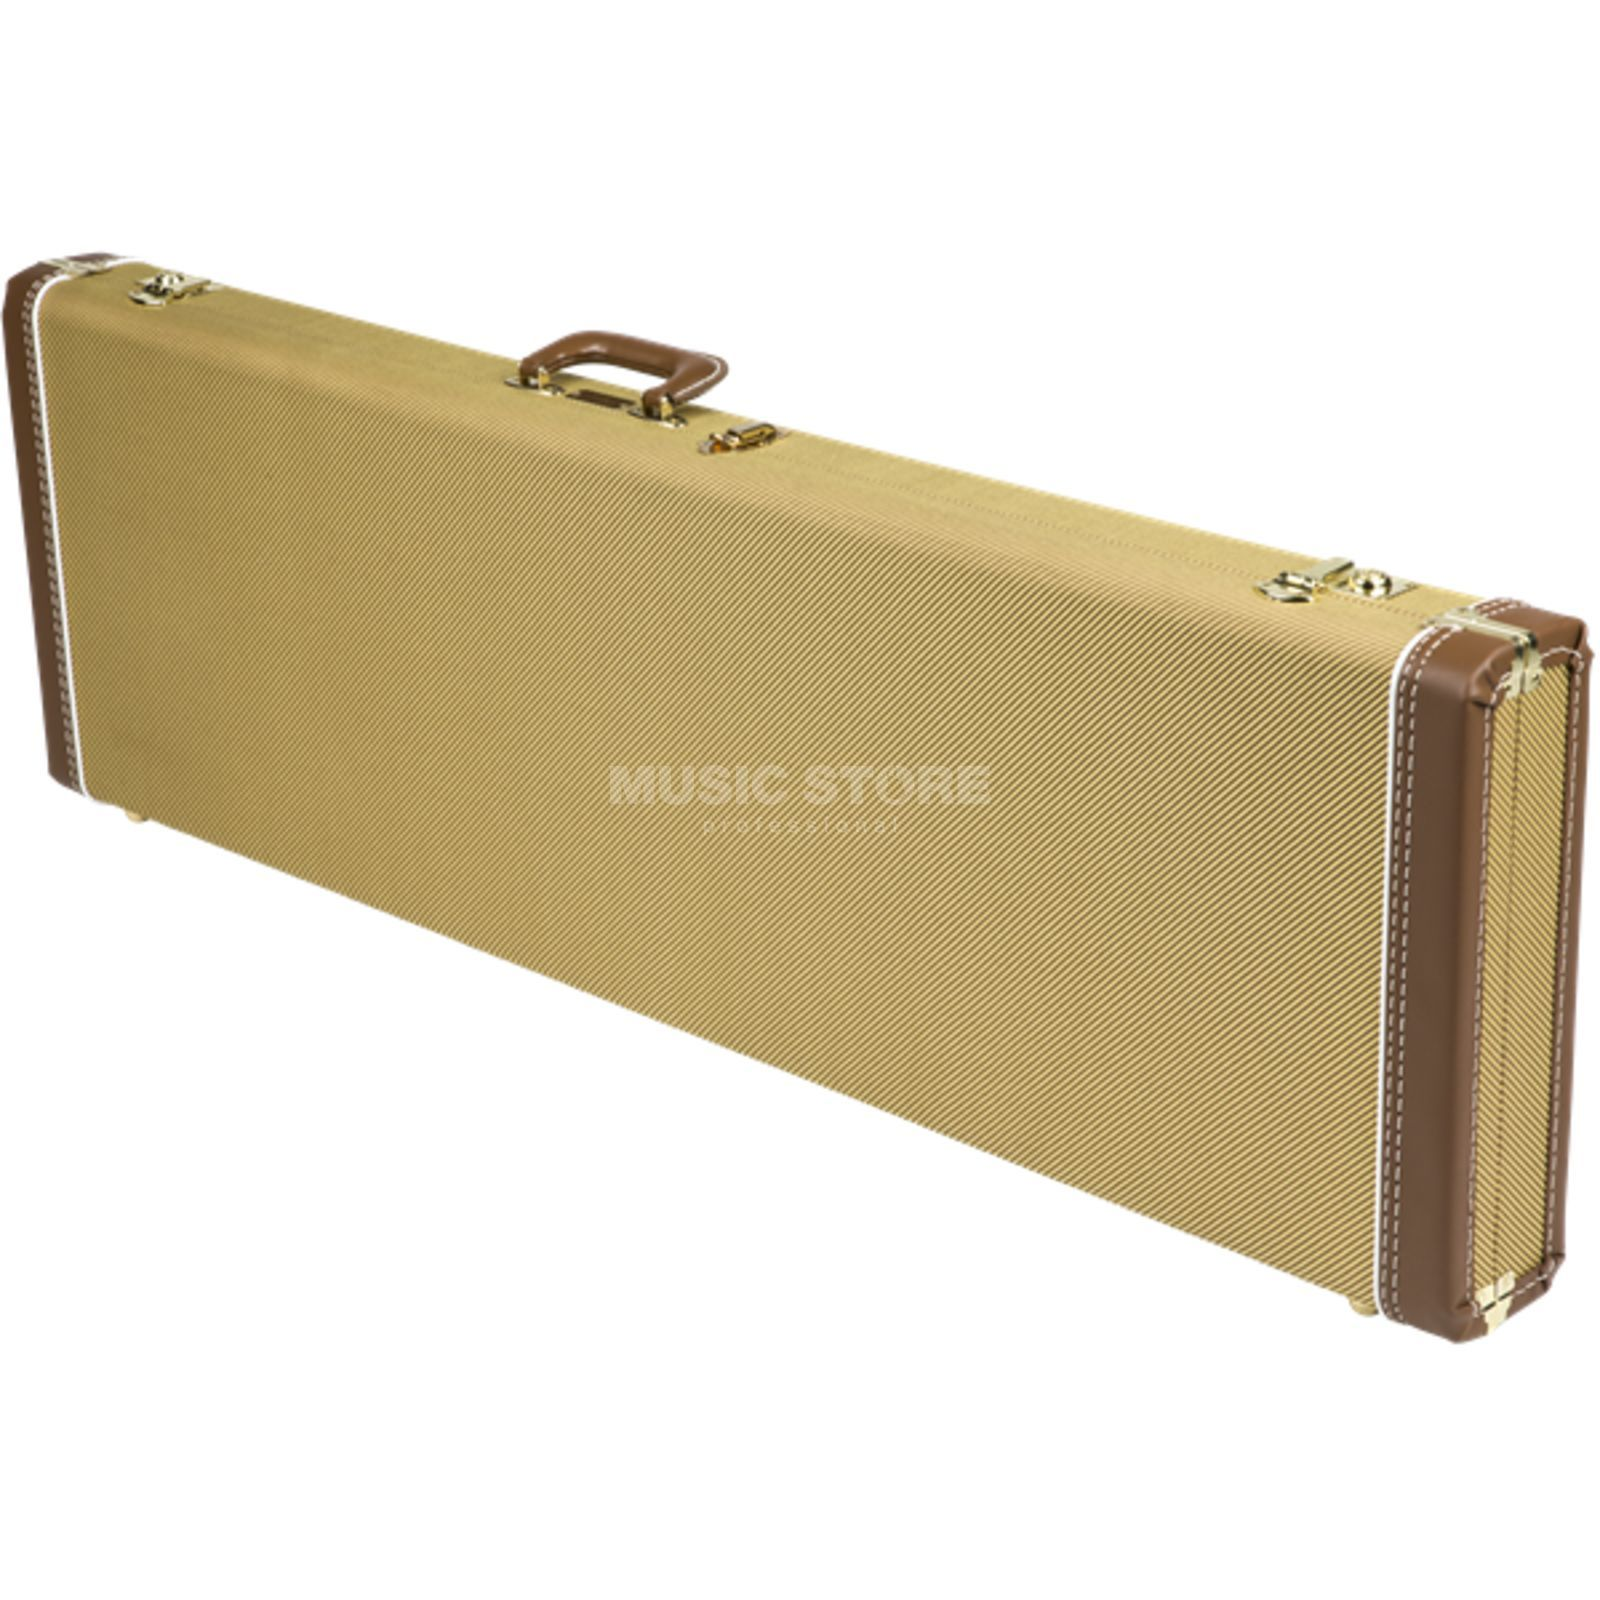 Fender Case MultiFit Hardshell P-Bass Tweed with Red Poodle Plush Zdjęcie produktu